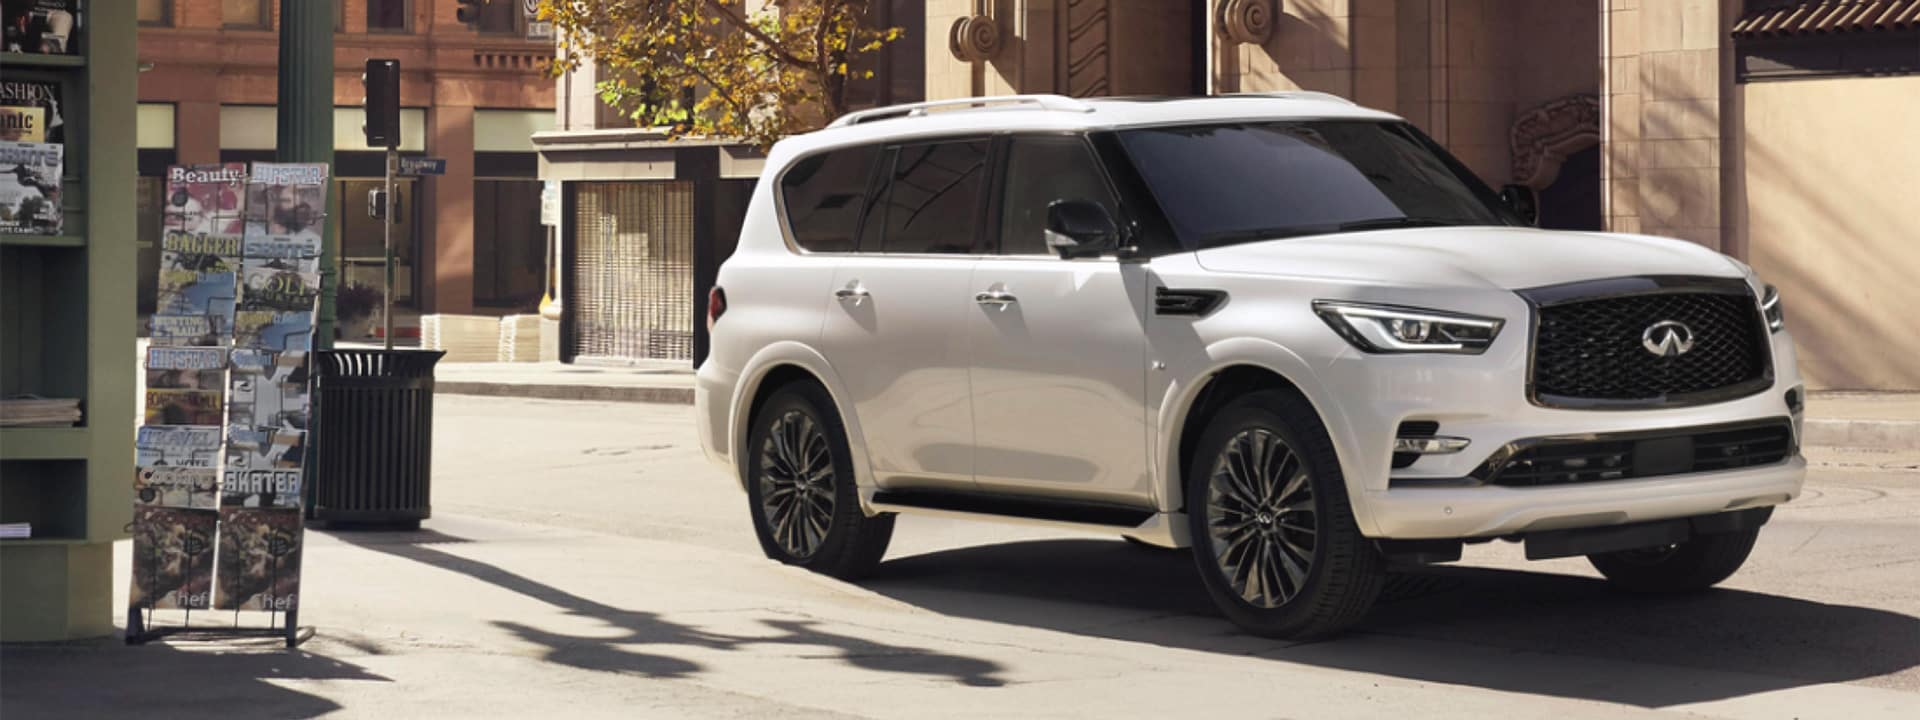 2021 INFINITI QX80 for sales in OK City